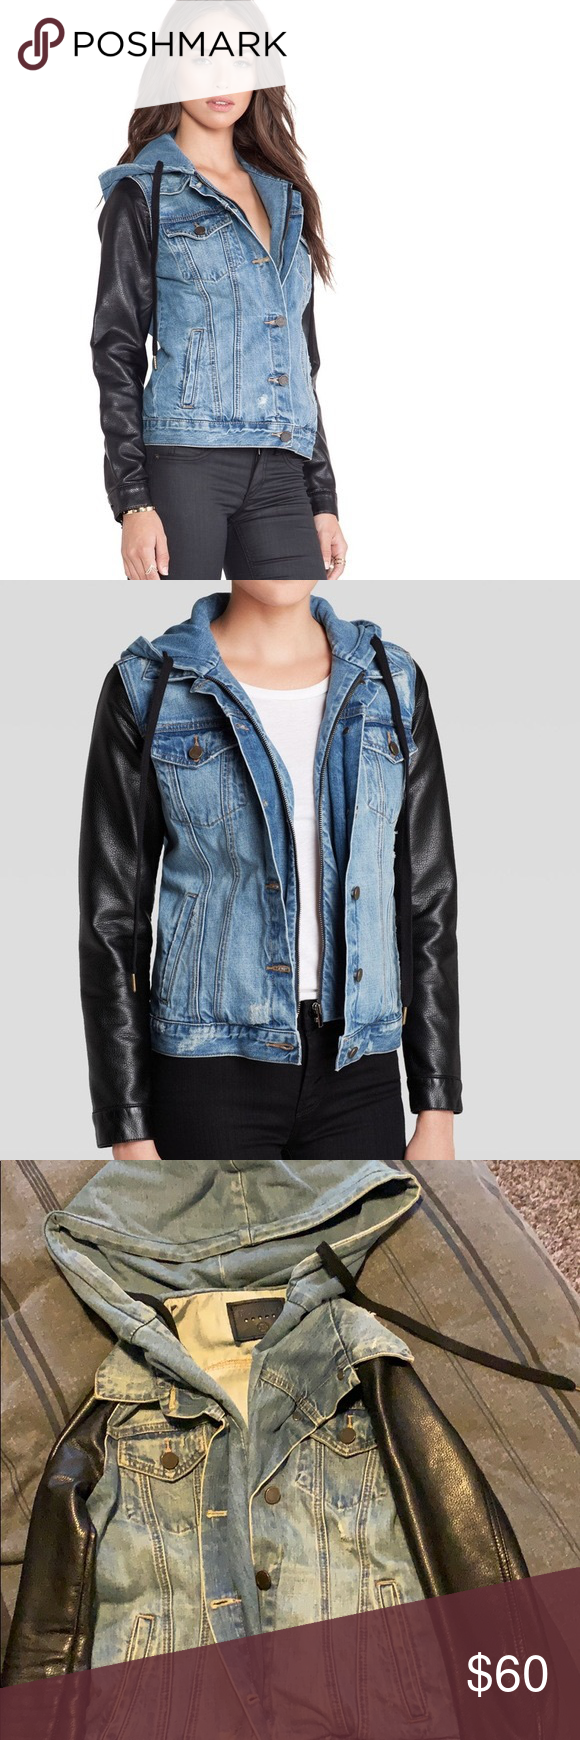 Denim And Faux Leather Jacket This Jacket Is So Badass Can Be Dressed Up Or Down Love The Hood And The Leather Slee Faux Leather Jackets Jackets Denim Hoodie [ 1740 x 580 Pixel ]